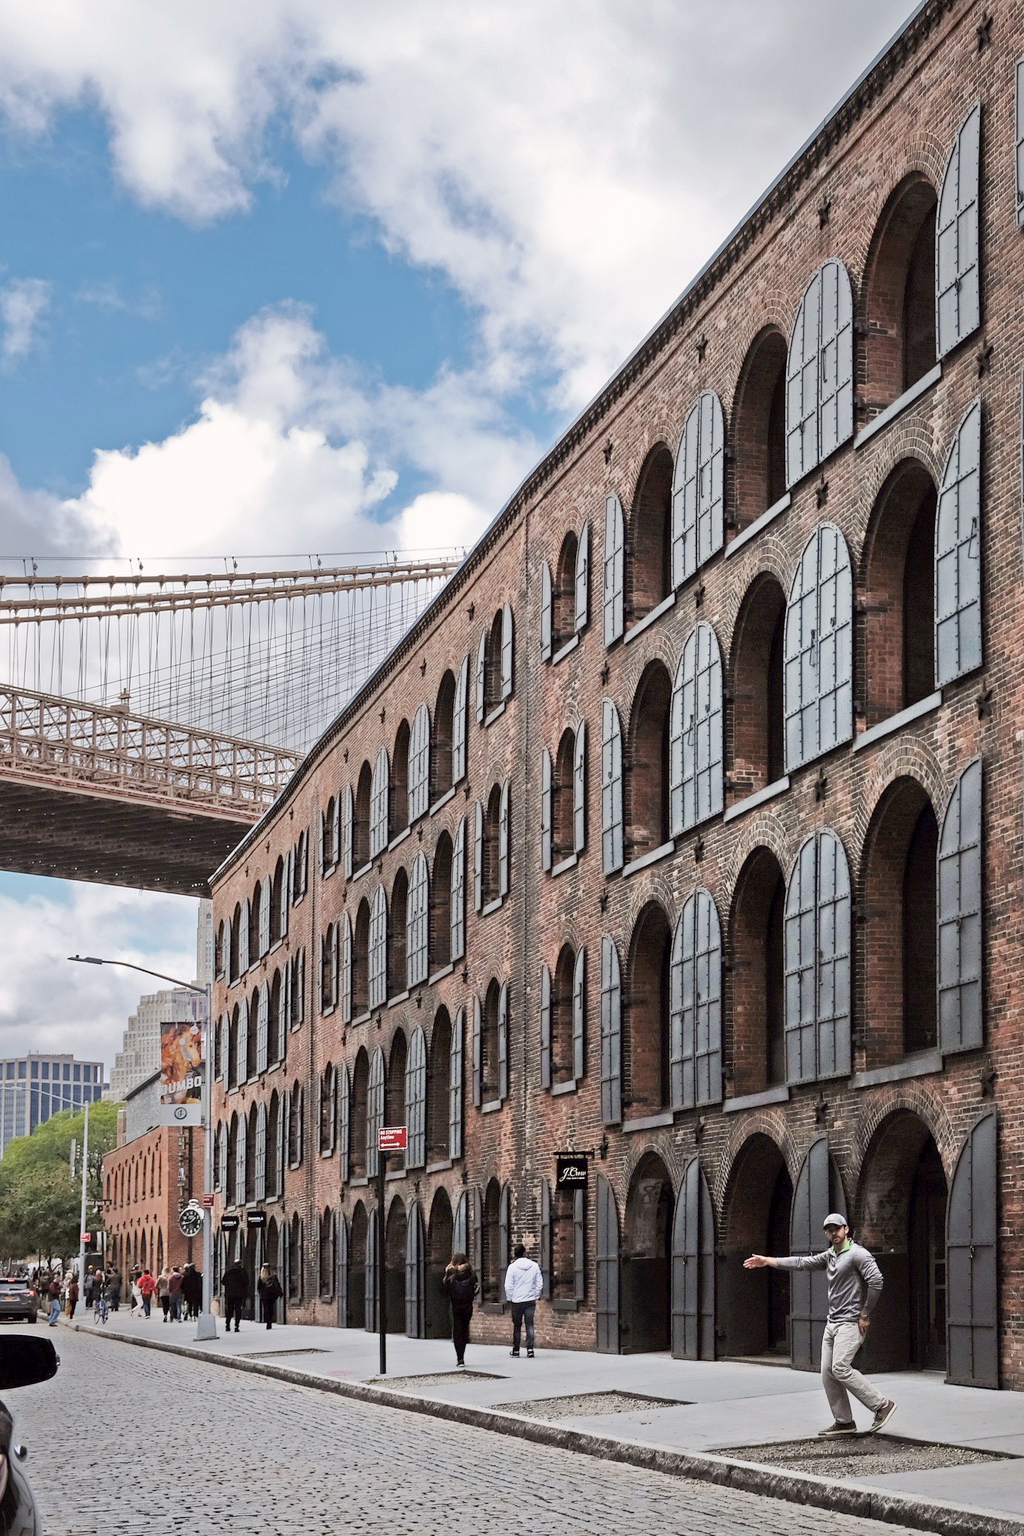 Warehouse district with bespoke shops